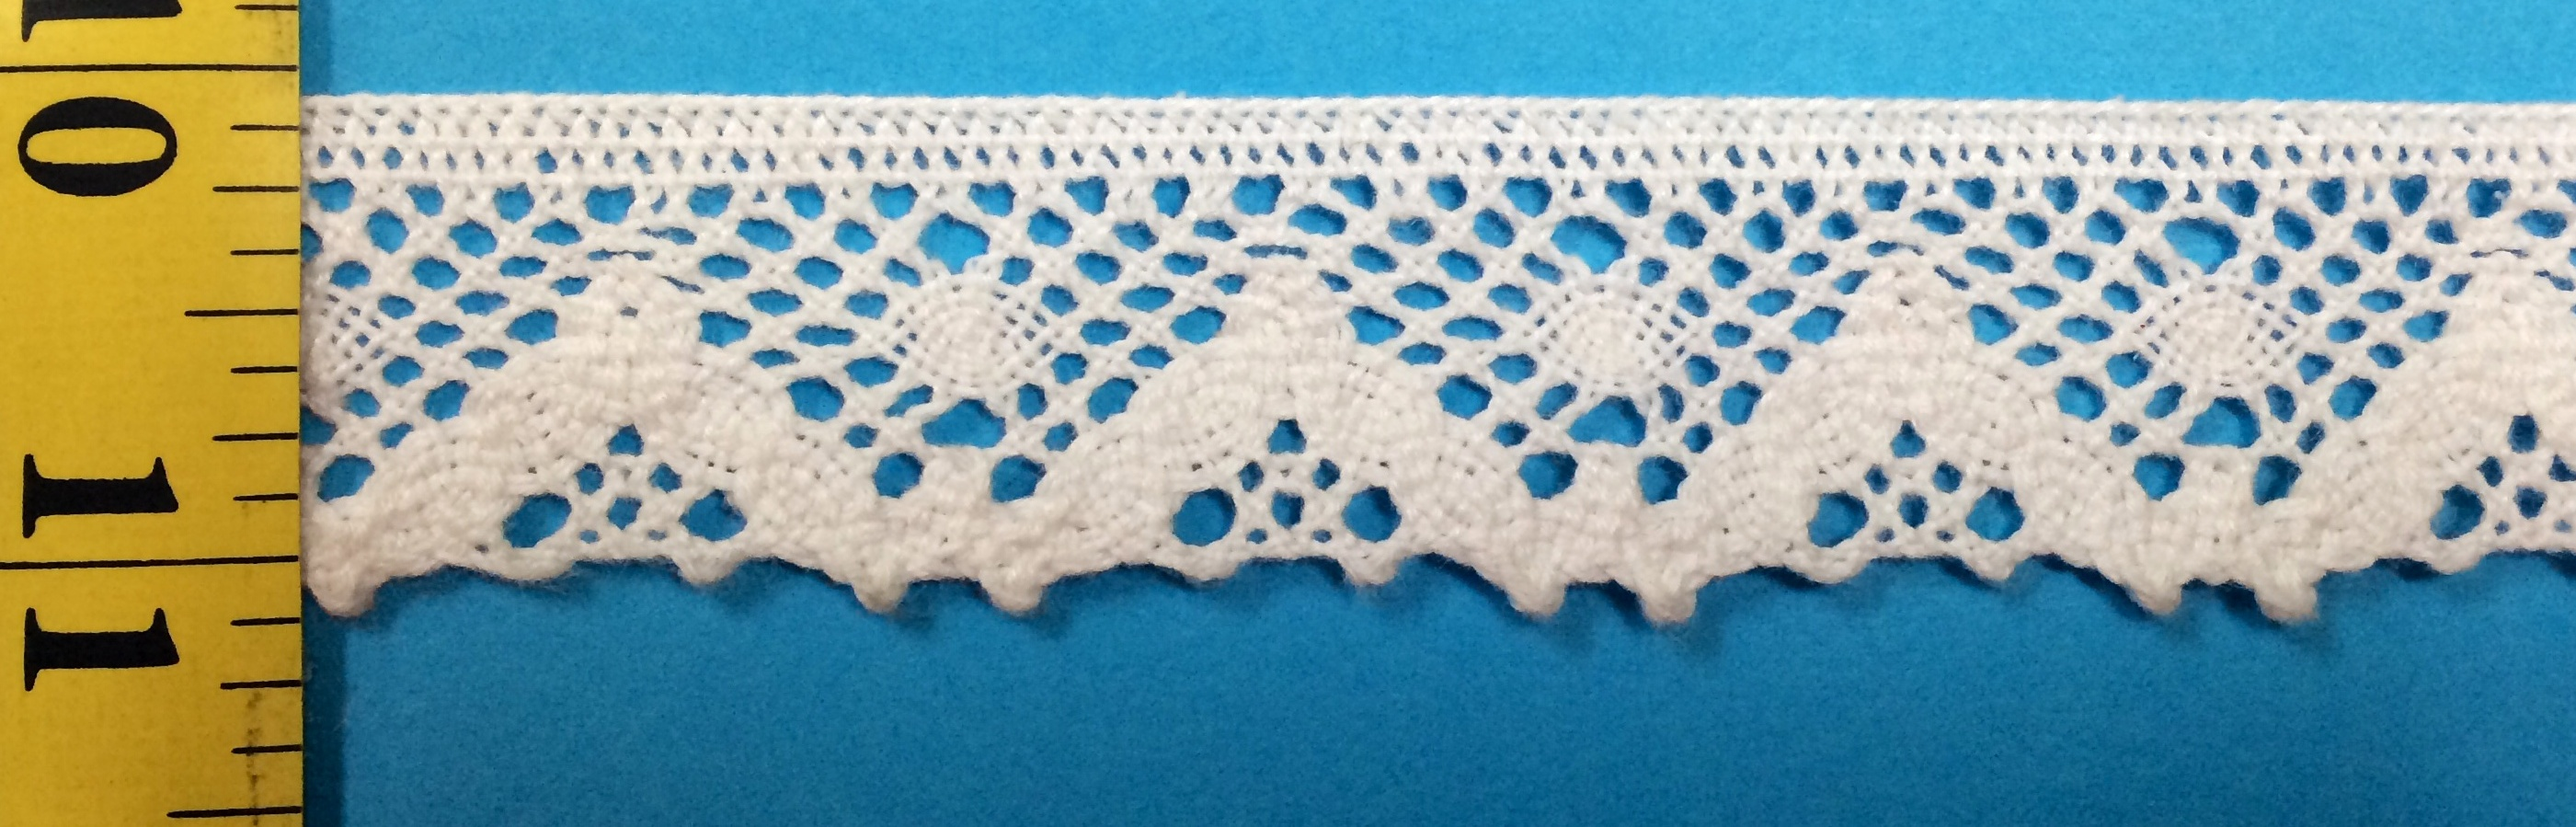 "1 5/8"" Cluny Lace"